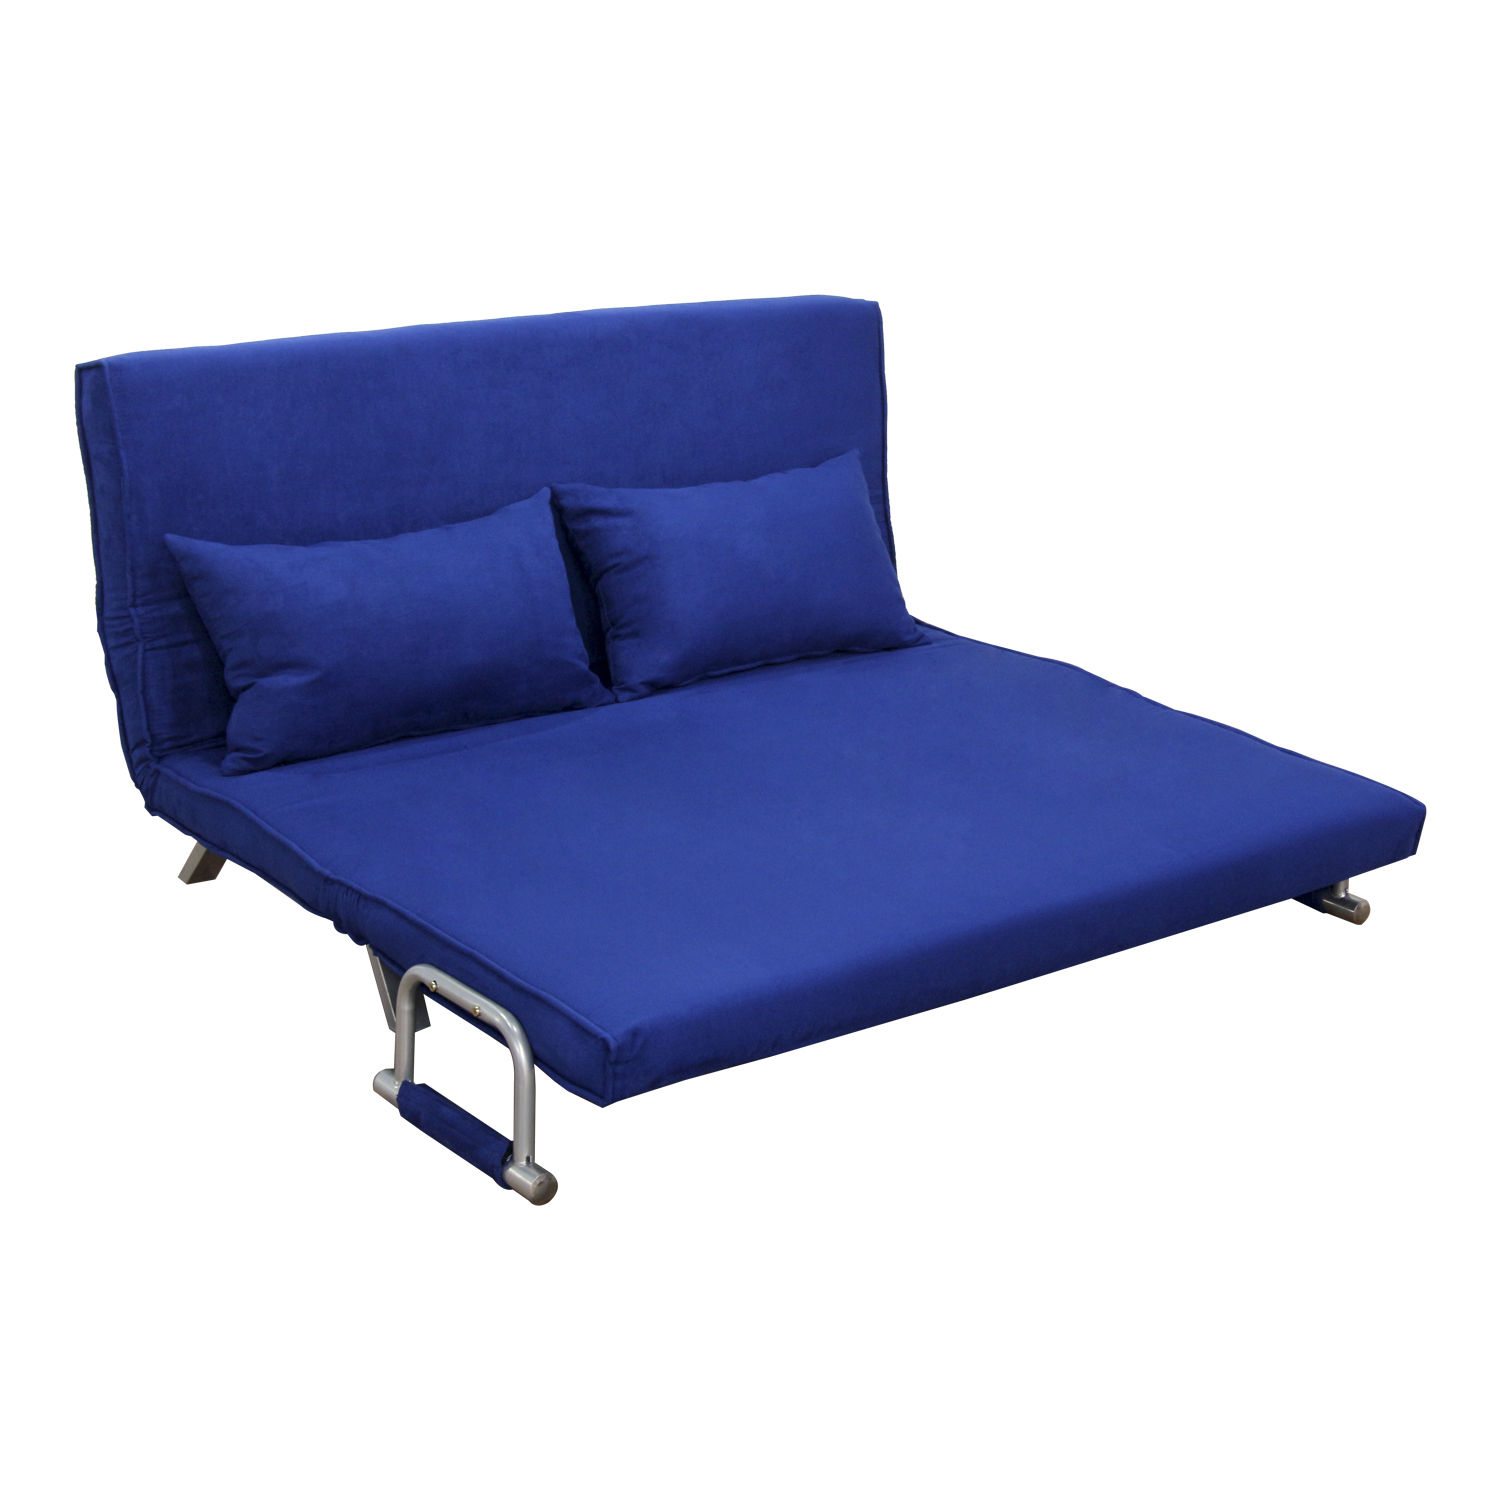 hom  61   folding futon sleeper couch sofa bed   blue   walmart    rh   walmart